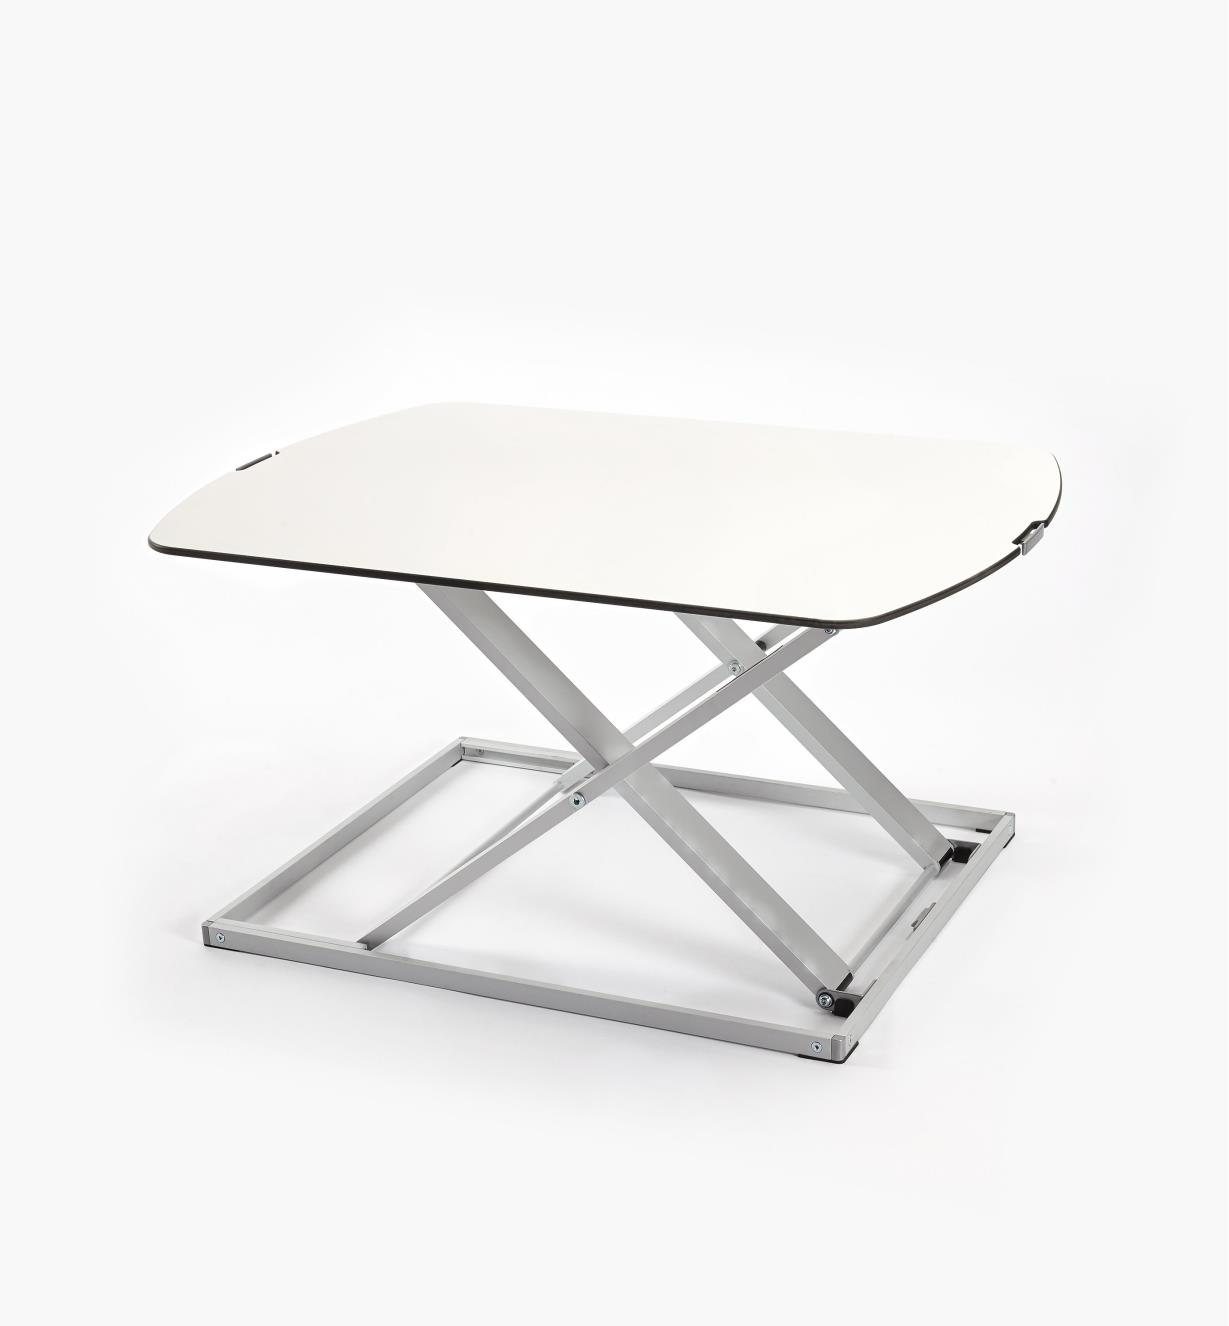 00S8040 - Height-Adjustable Work Stand